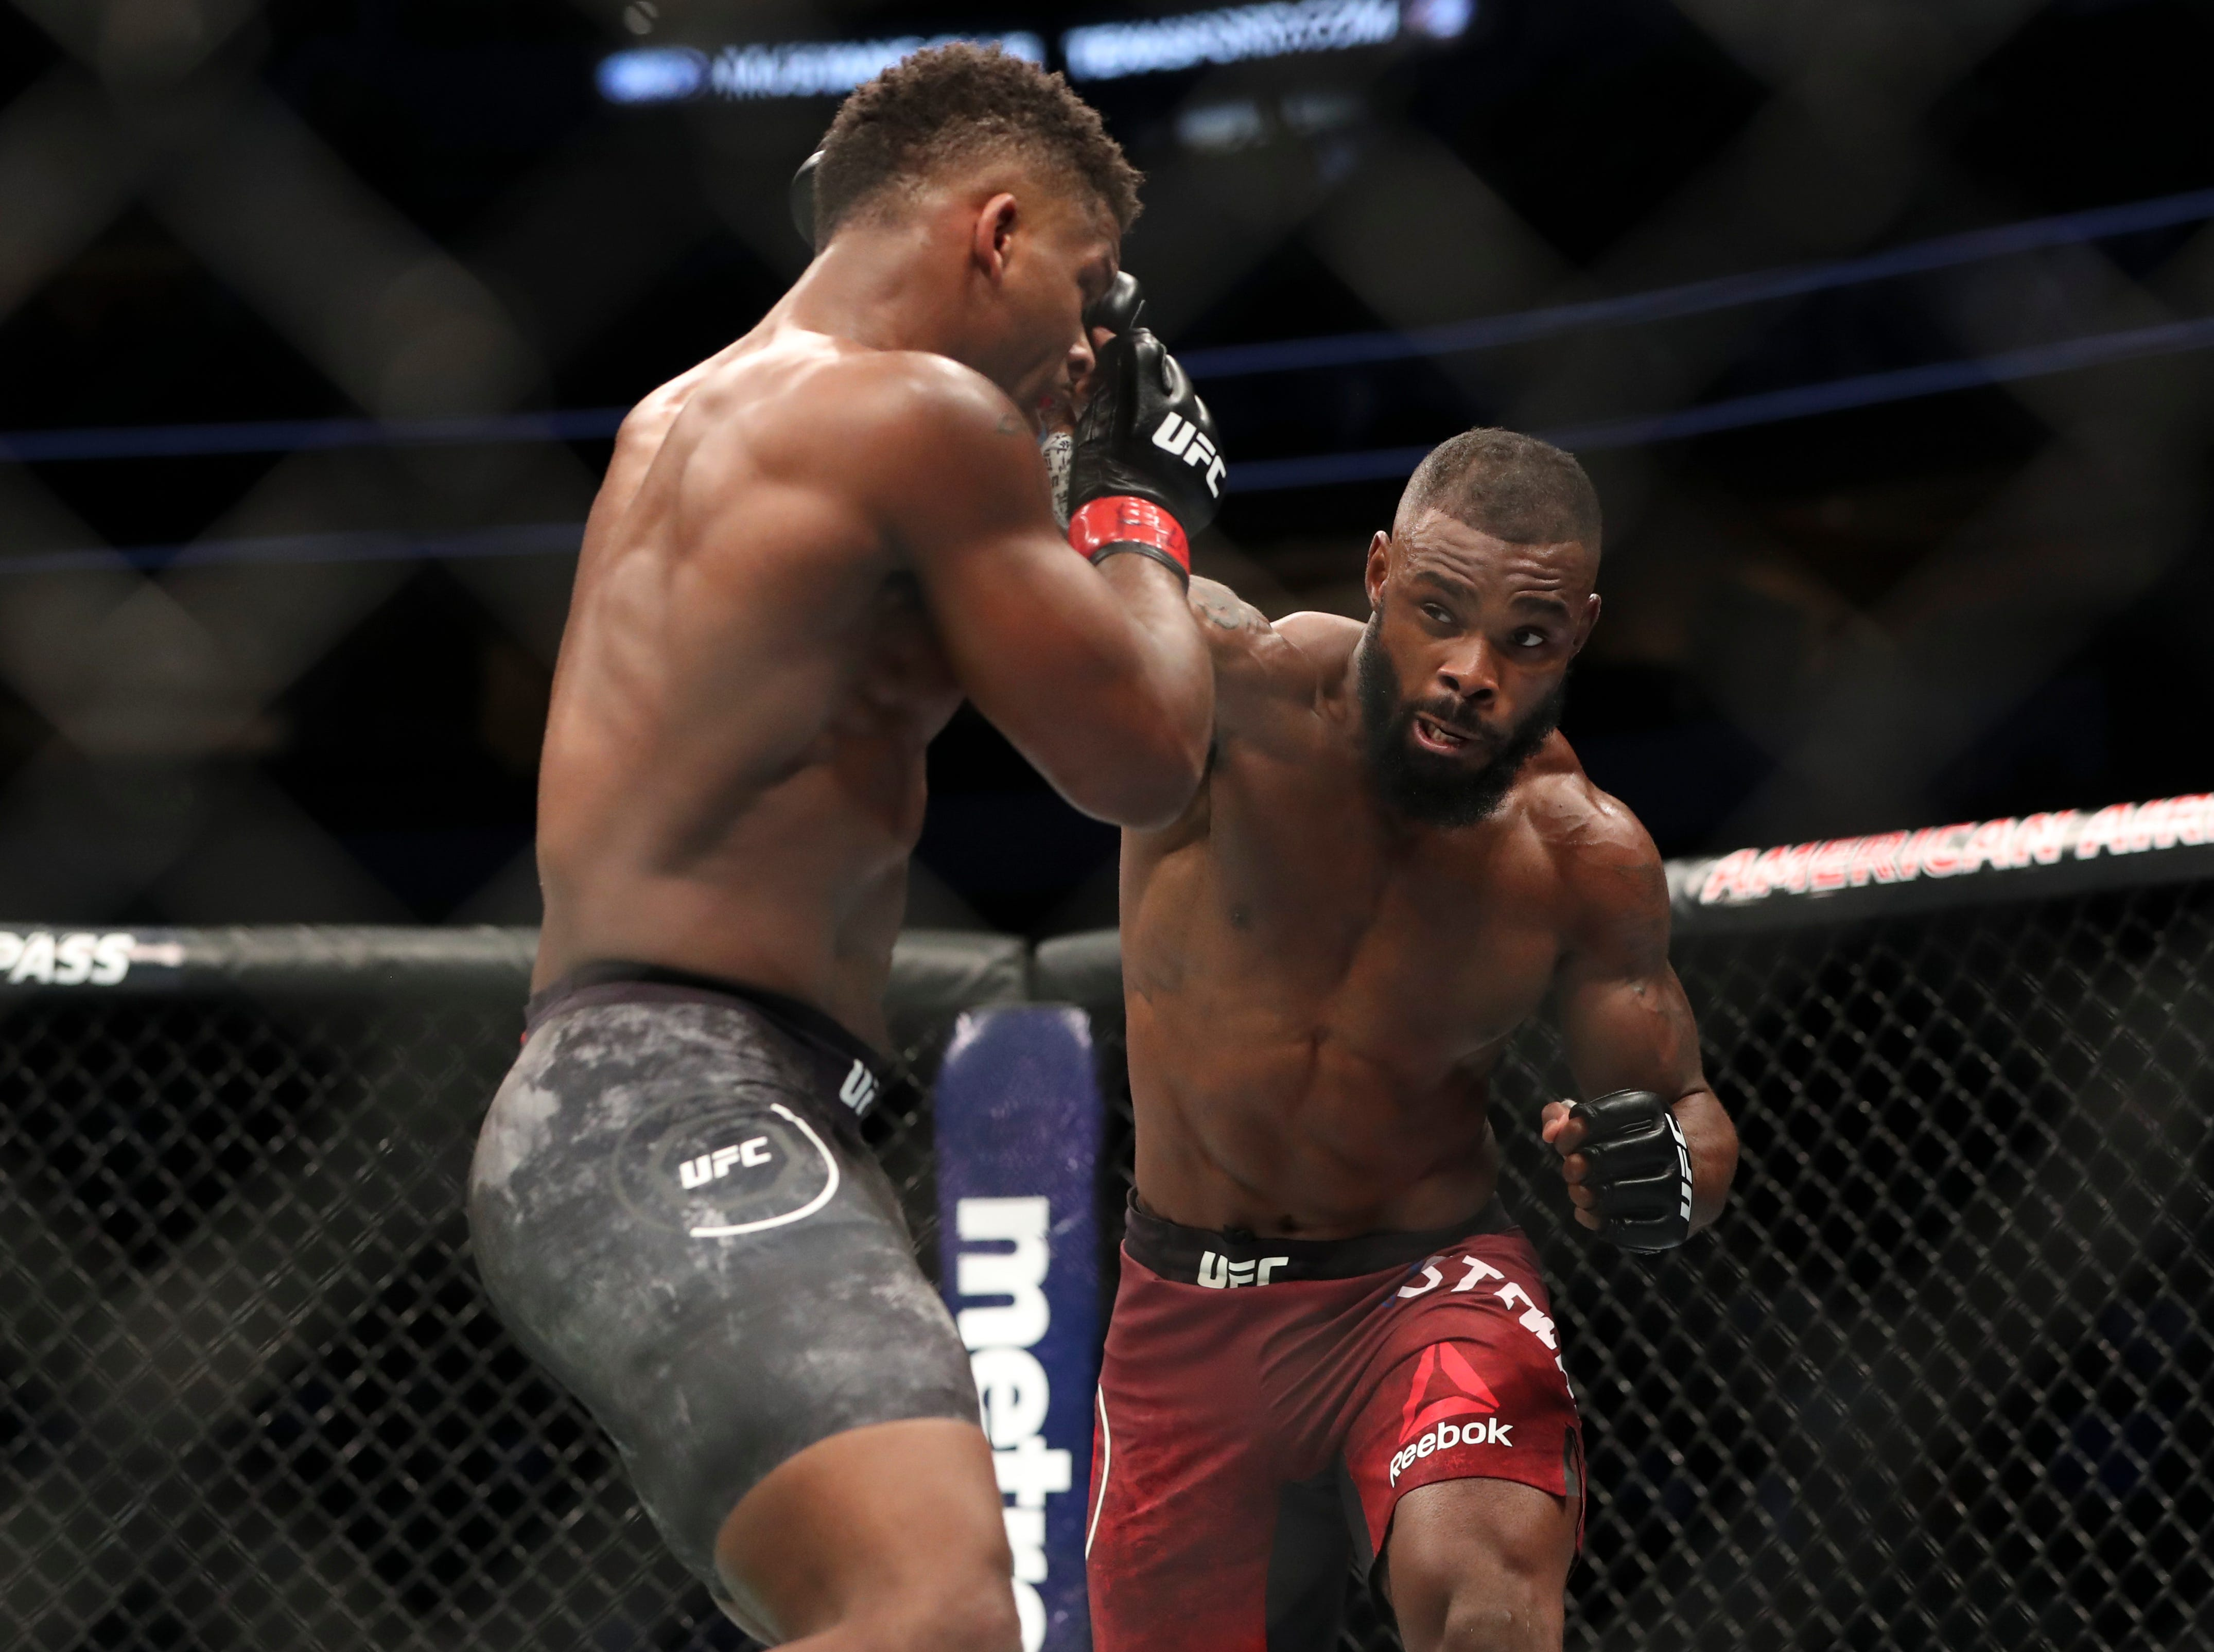 Charles Byrd (red gloves) fights Darren Stewart (blue gloves) during UFC 228 at American Airlines Center.